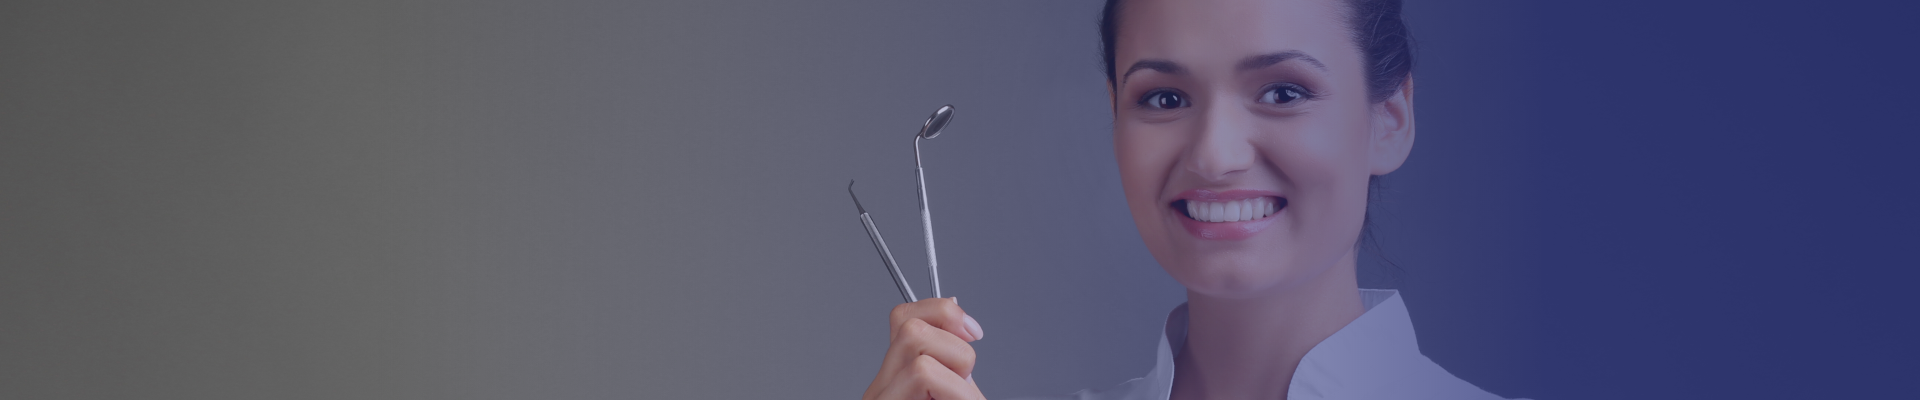 Dentist Holding Tools